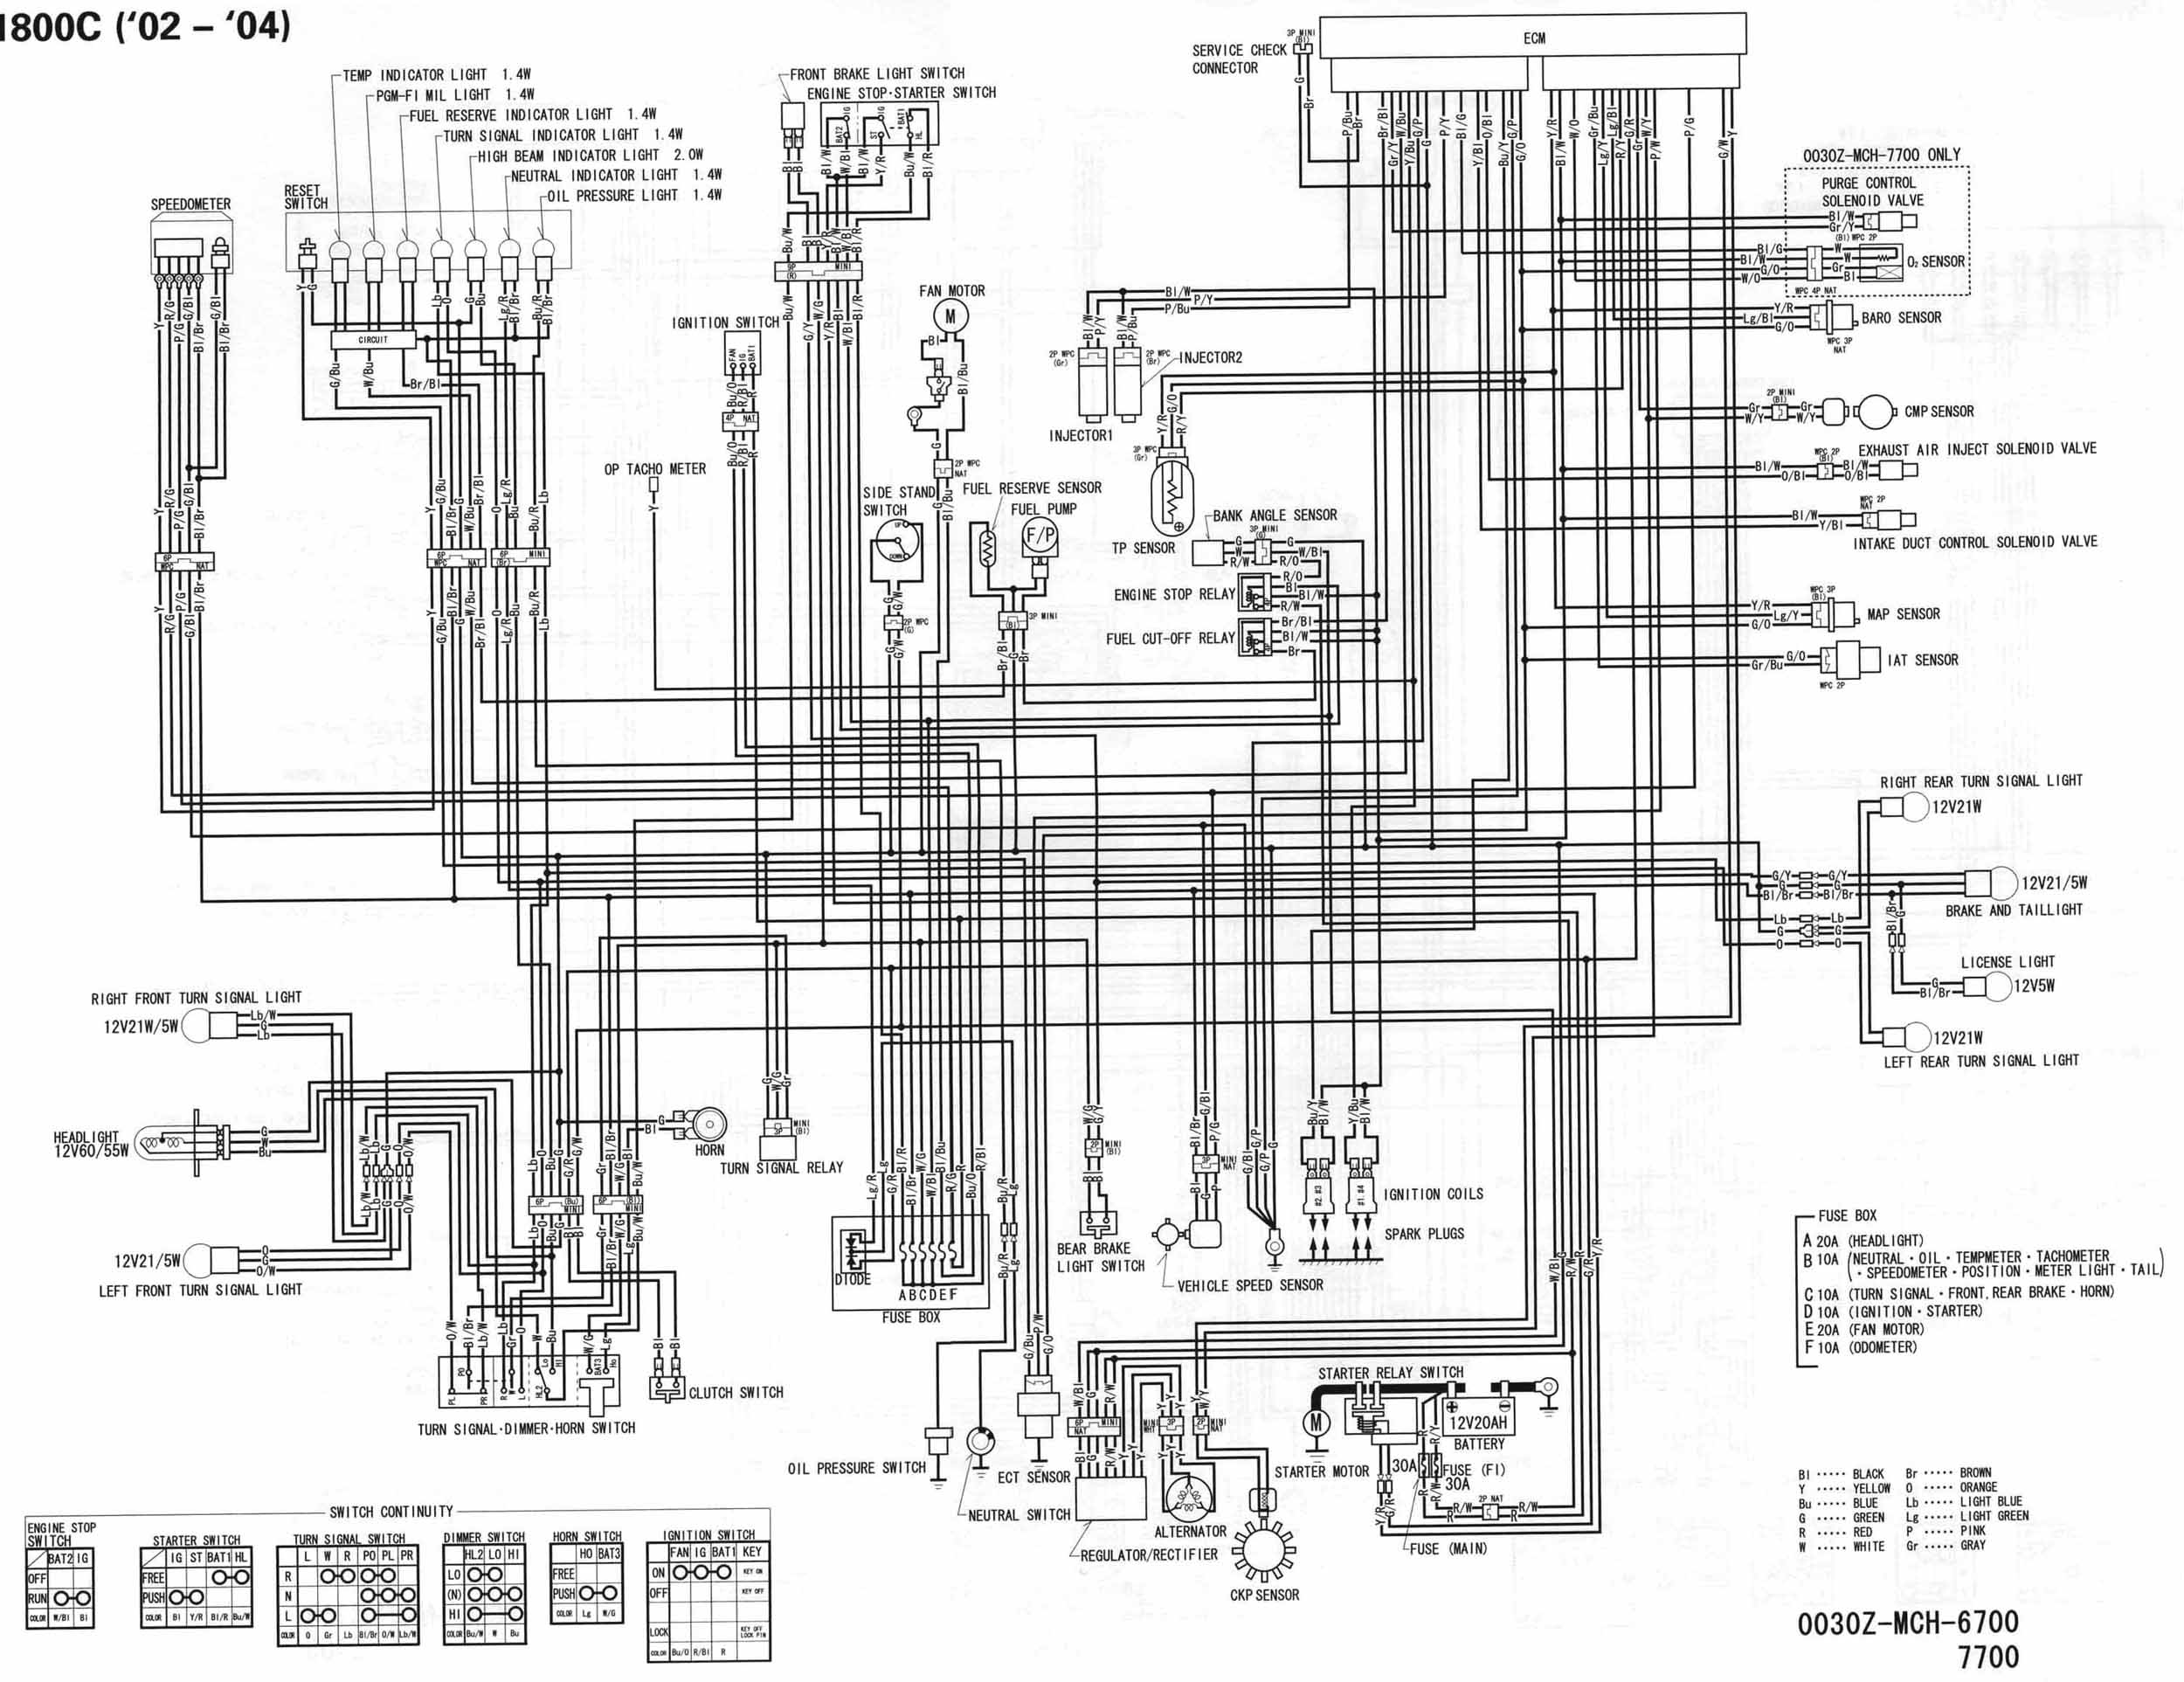 Victory Engine Diagram Wiring Library Custom Kingpin Harness 02 04 Vtx 1800c Schematic Motorcycle Wire Schematics